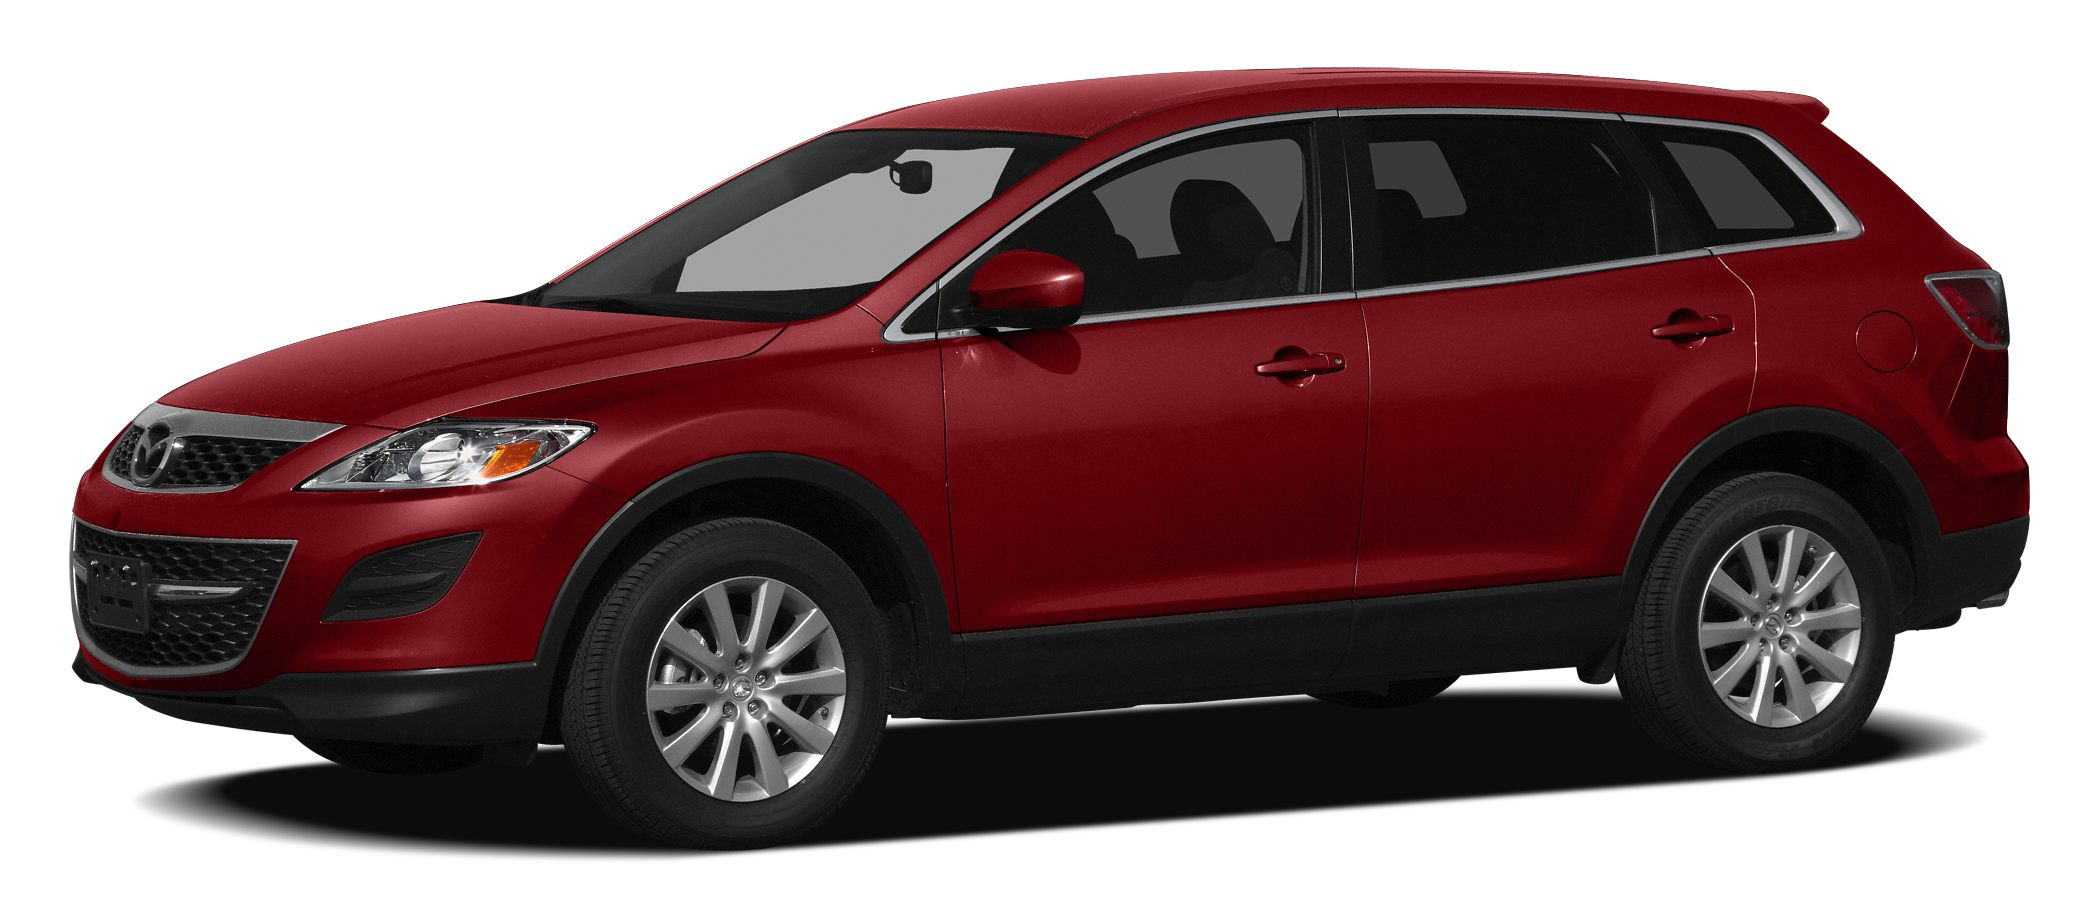 2011 Mazda CX-9 Touring AWD LeatherHeated Seats clean NON-SMOKER very well kept vehicle AUX Input